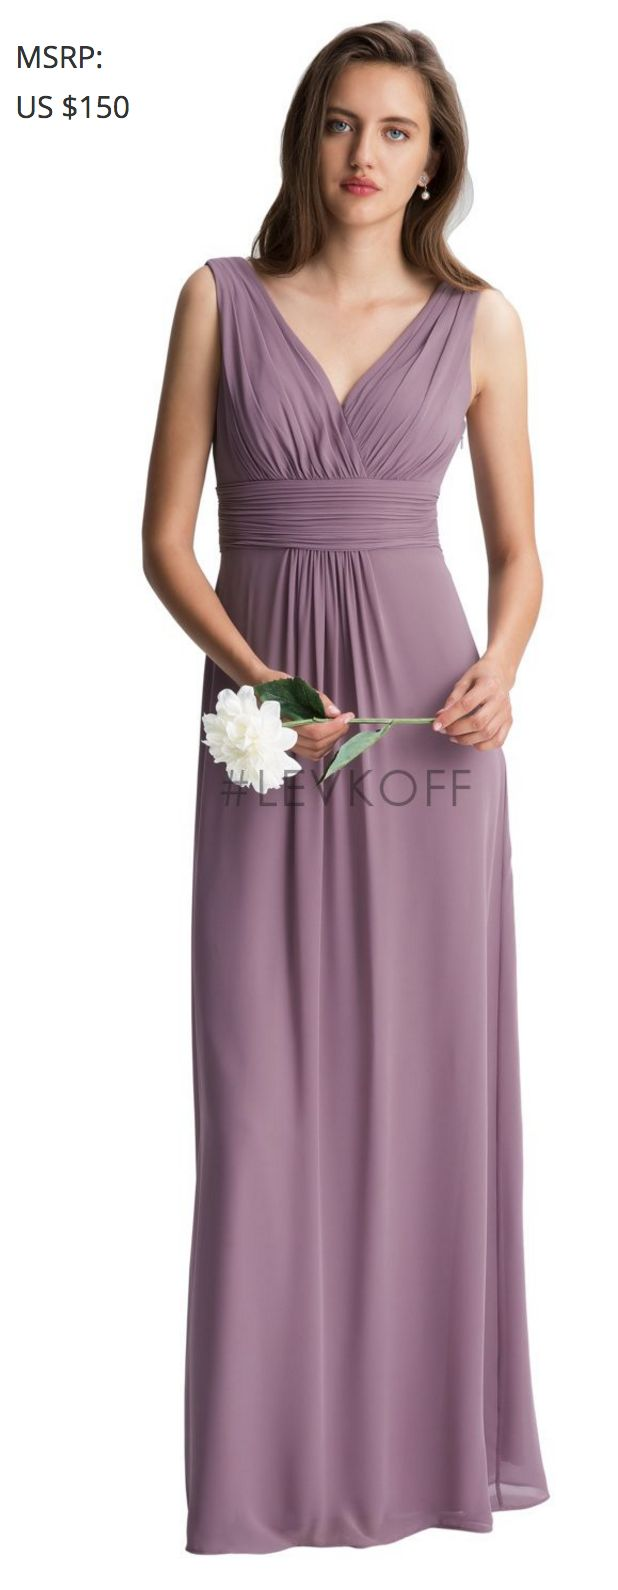 22 best dresses we saw in person images on Pinterest | Bridesmaids ...